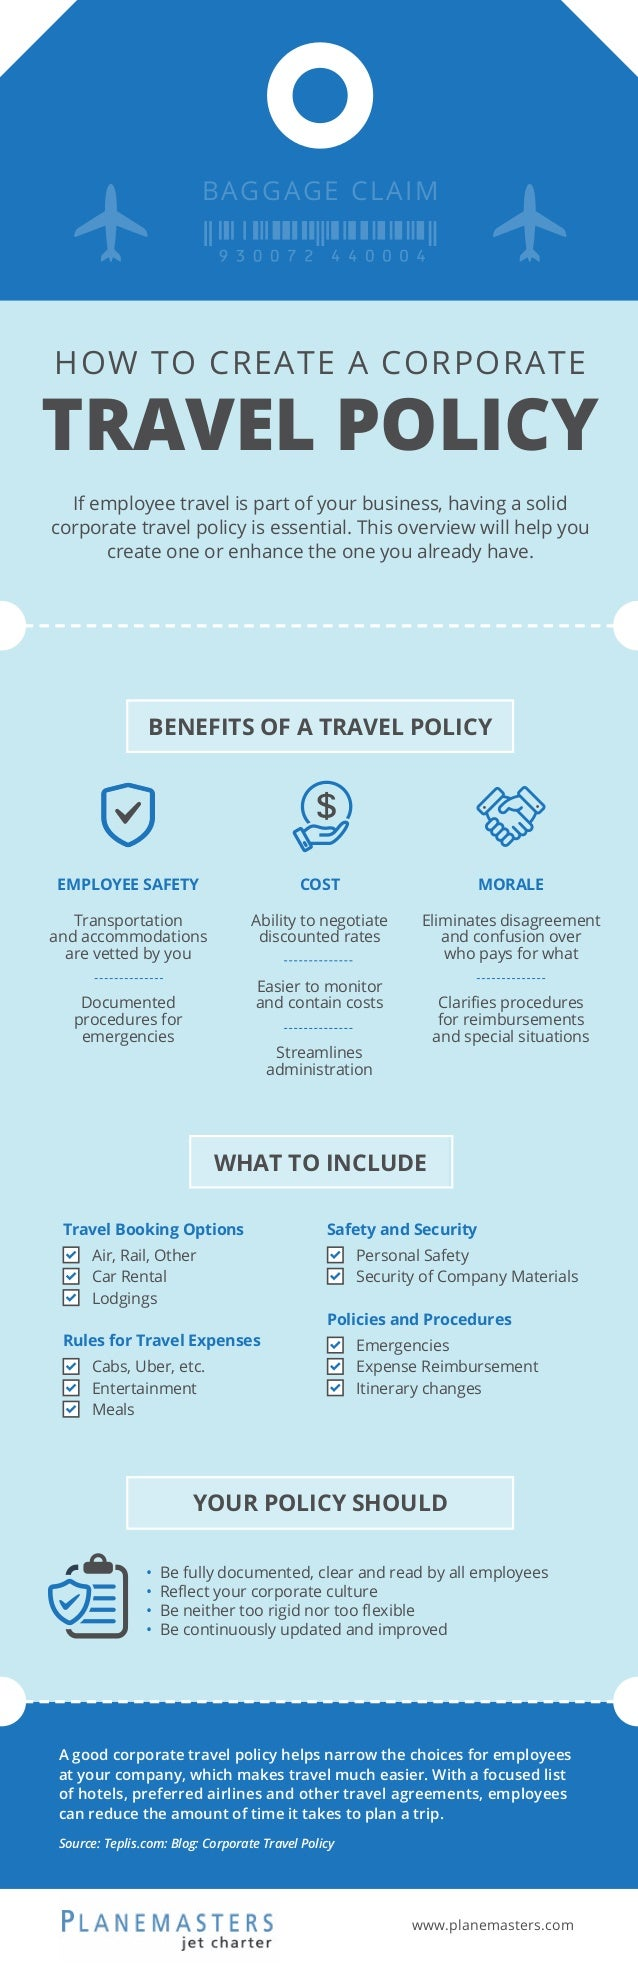 How to Create a Corporate Travel Policy